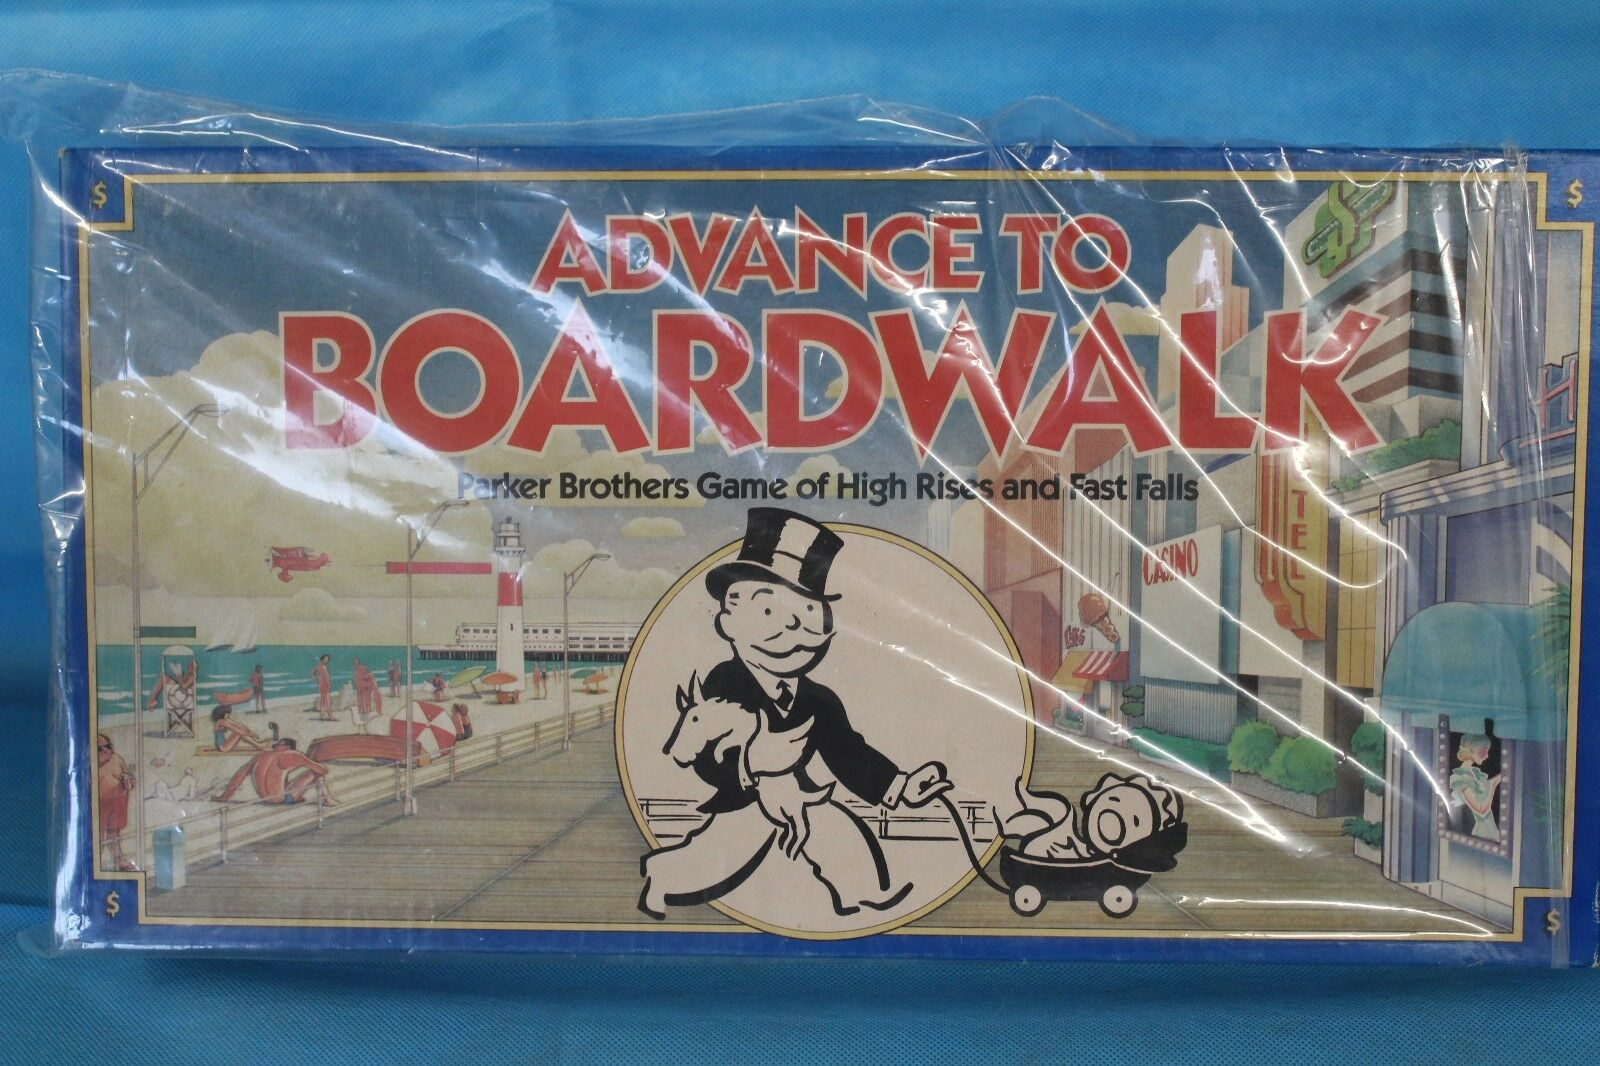 COMPLETE Vintage To 1985 Advance To Vintage Boardwalk Board Game Parker Brothers Monopoly a7d3e6